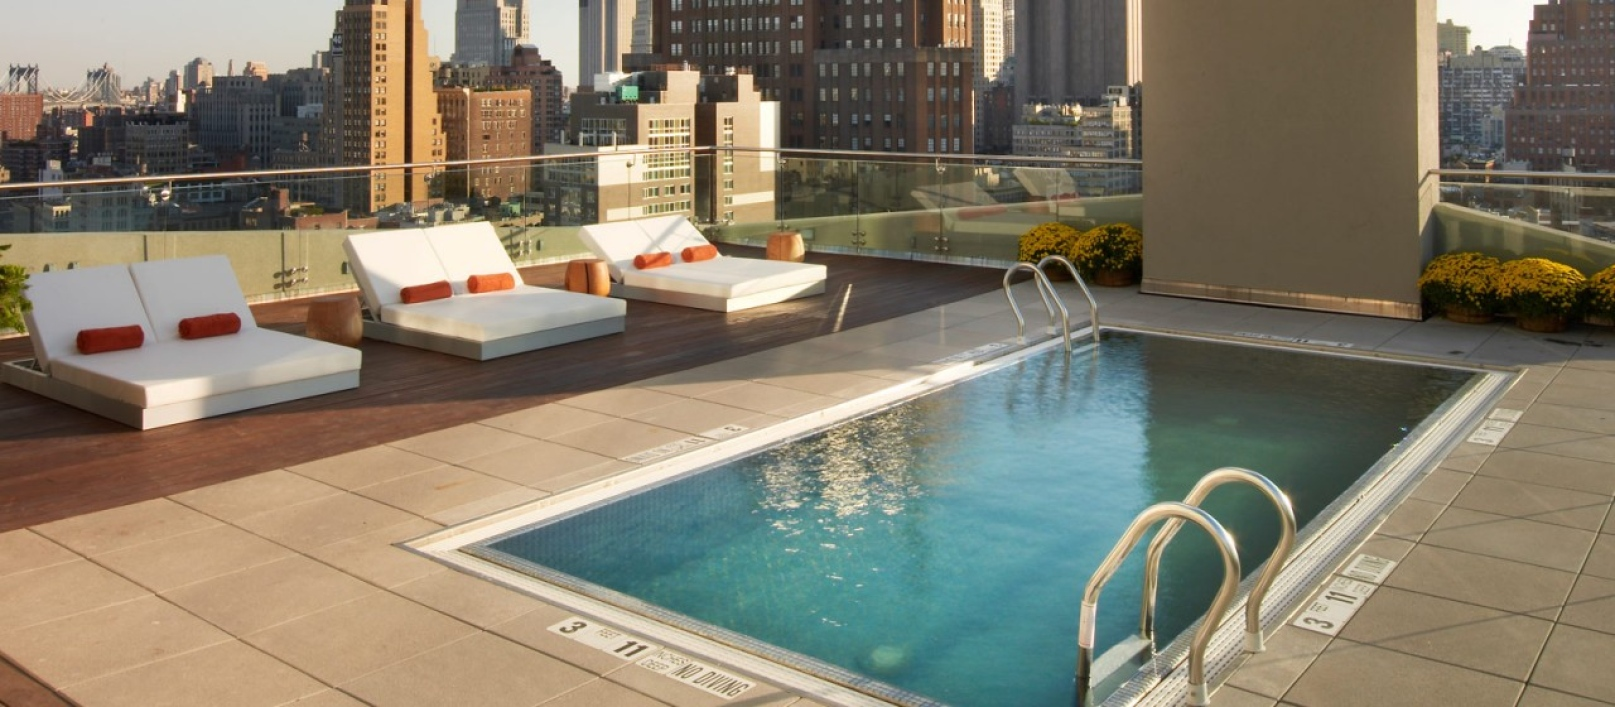 Hotel Pools New York City Suzzstravels